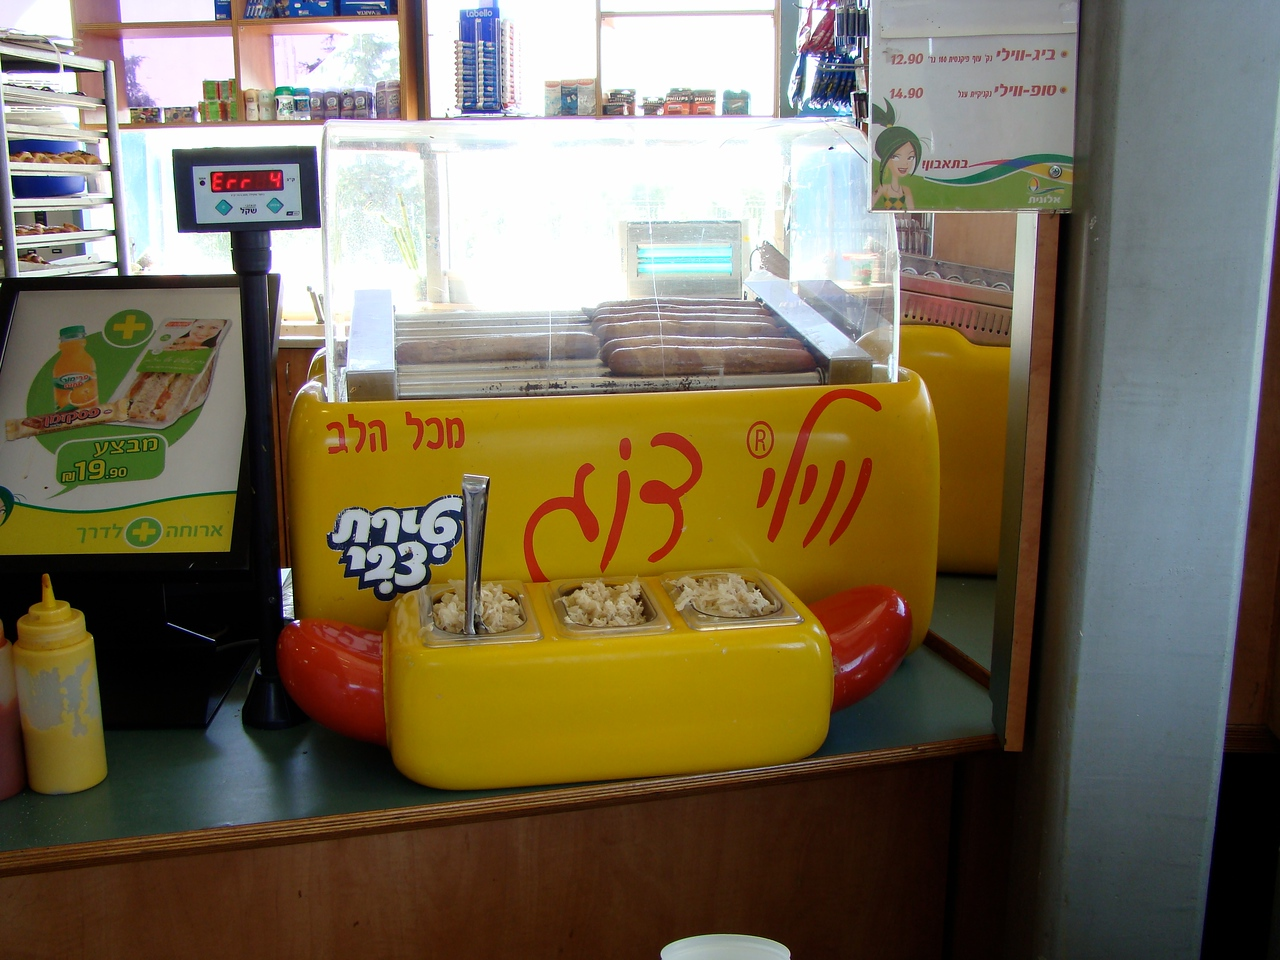 Hotdog Concession at Gas Station